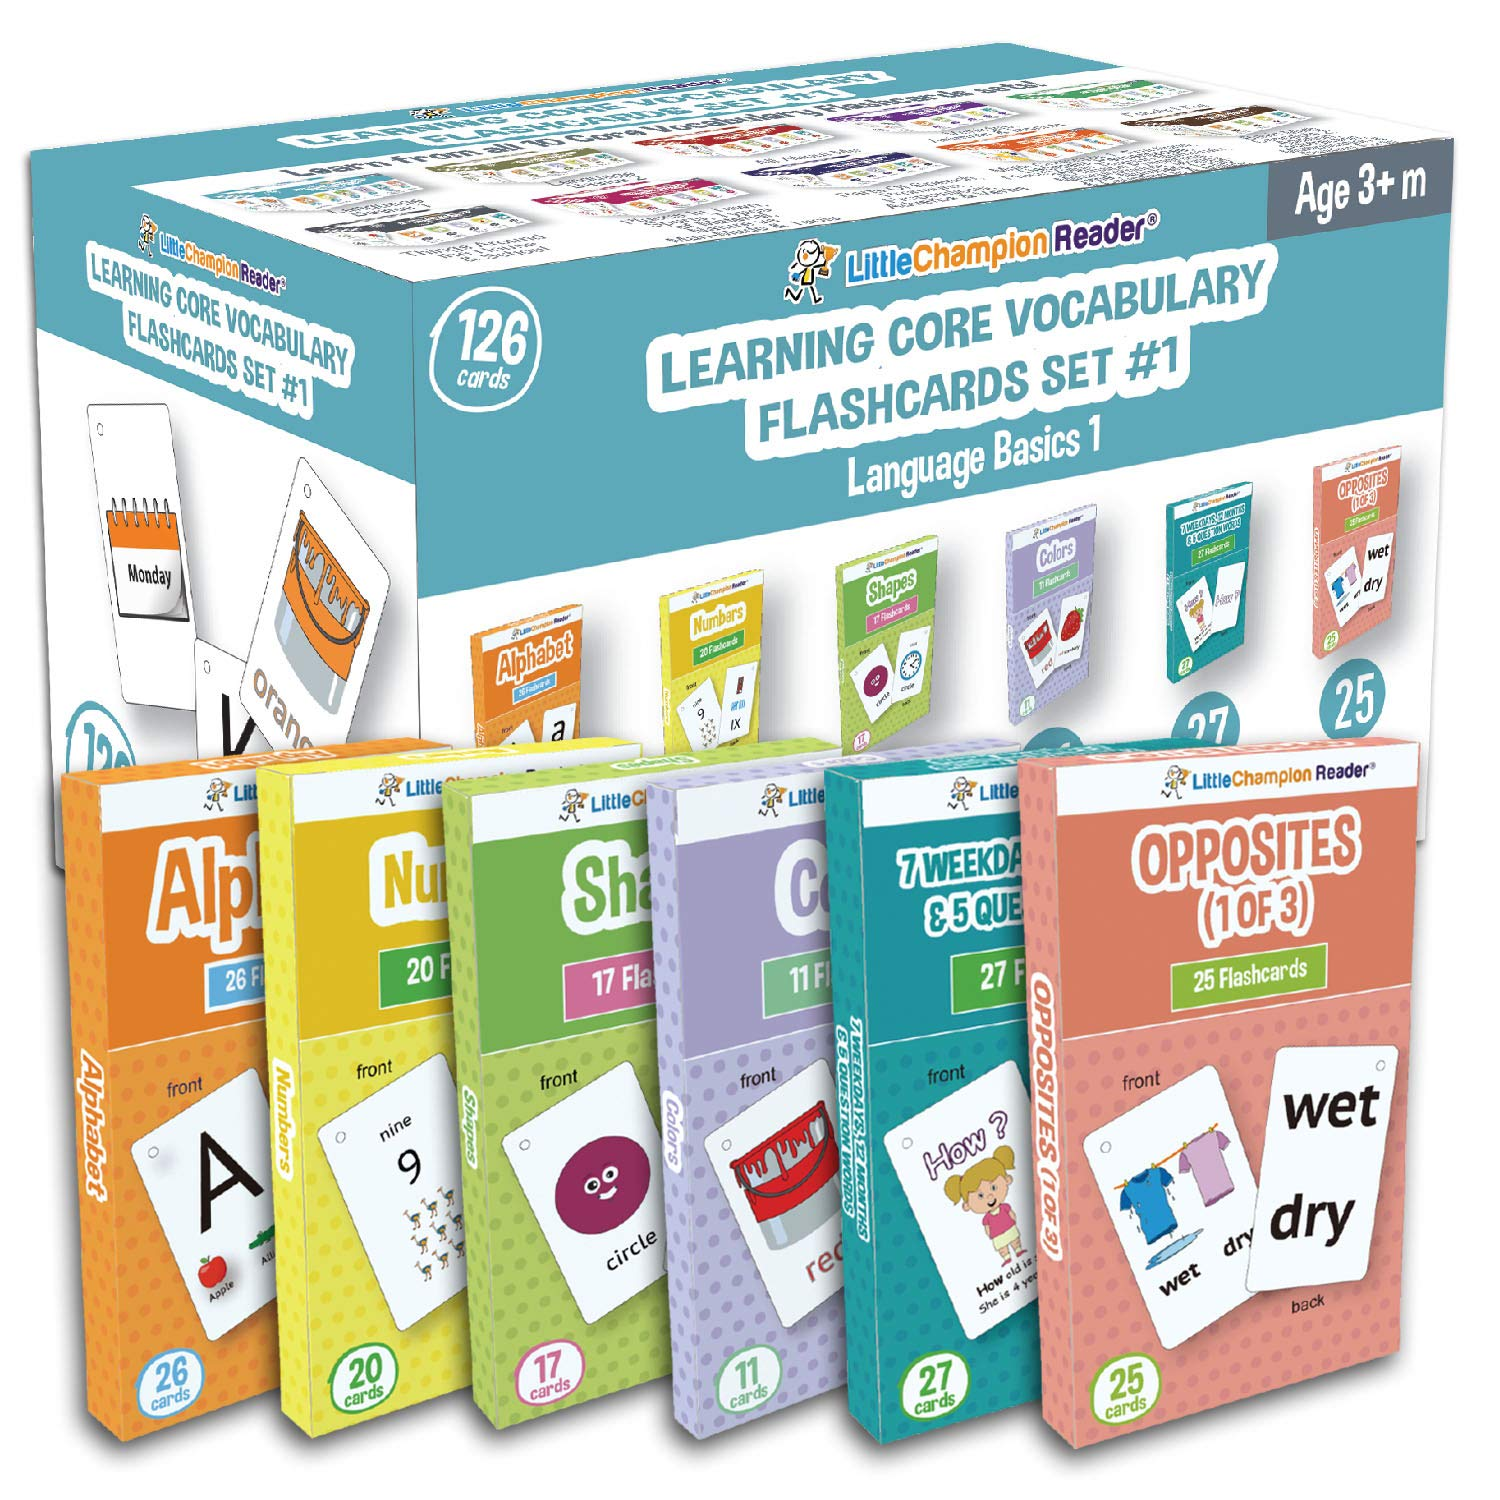 Set 1 Flash Cards for Toddlers - 126 ABC Alphabet, Numbers, Colors, Shapes, Week Days, Months of The Year, Question Words & Opposites Flash Cards - Learning for Baby Toddler Preschool Kindergarten by Little Champion Reader